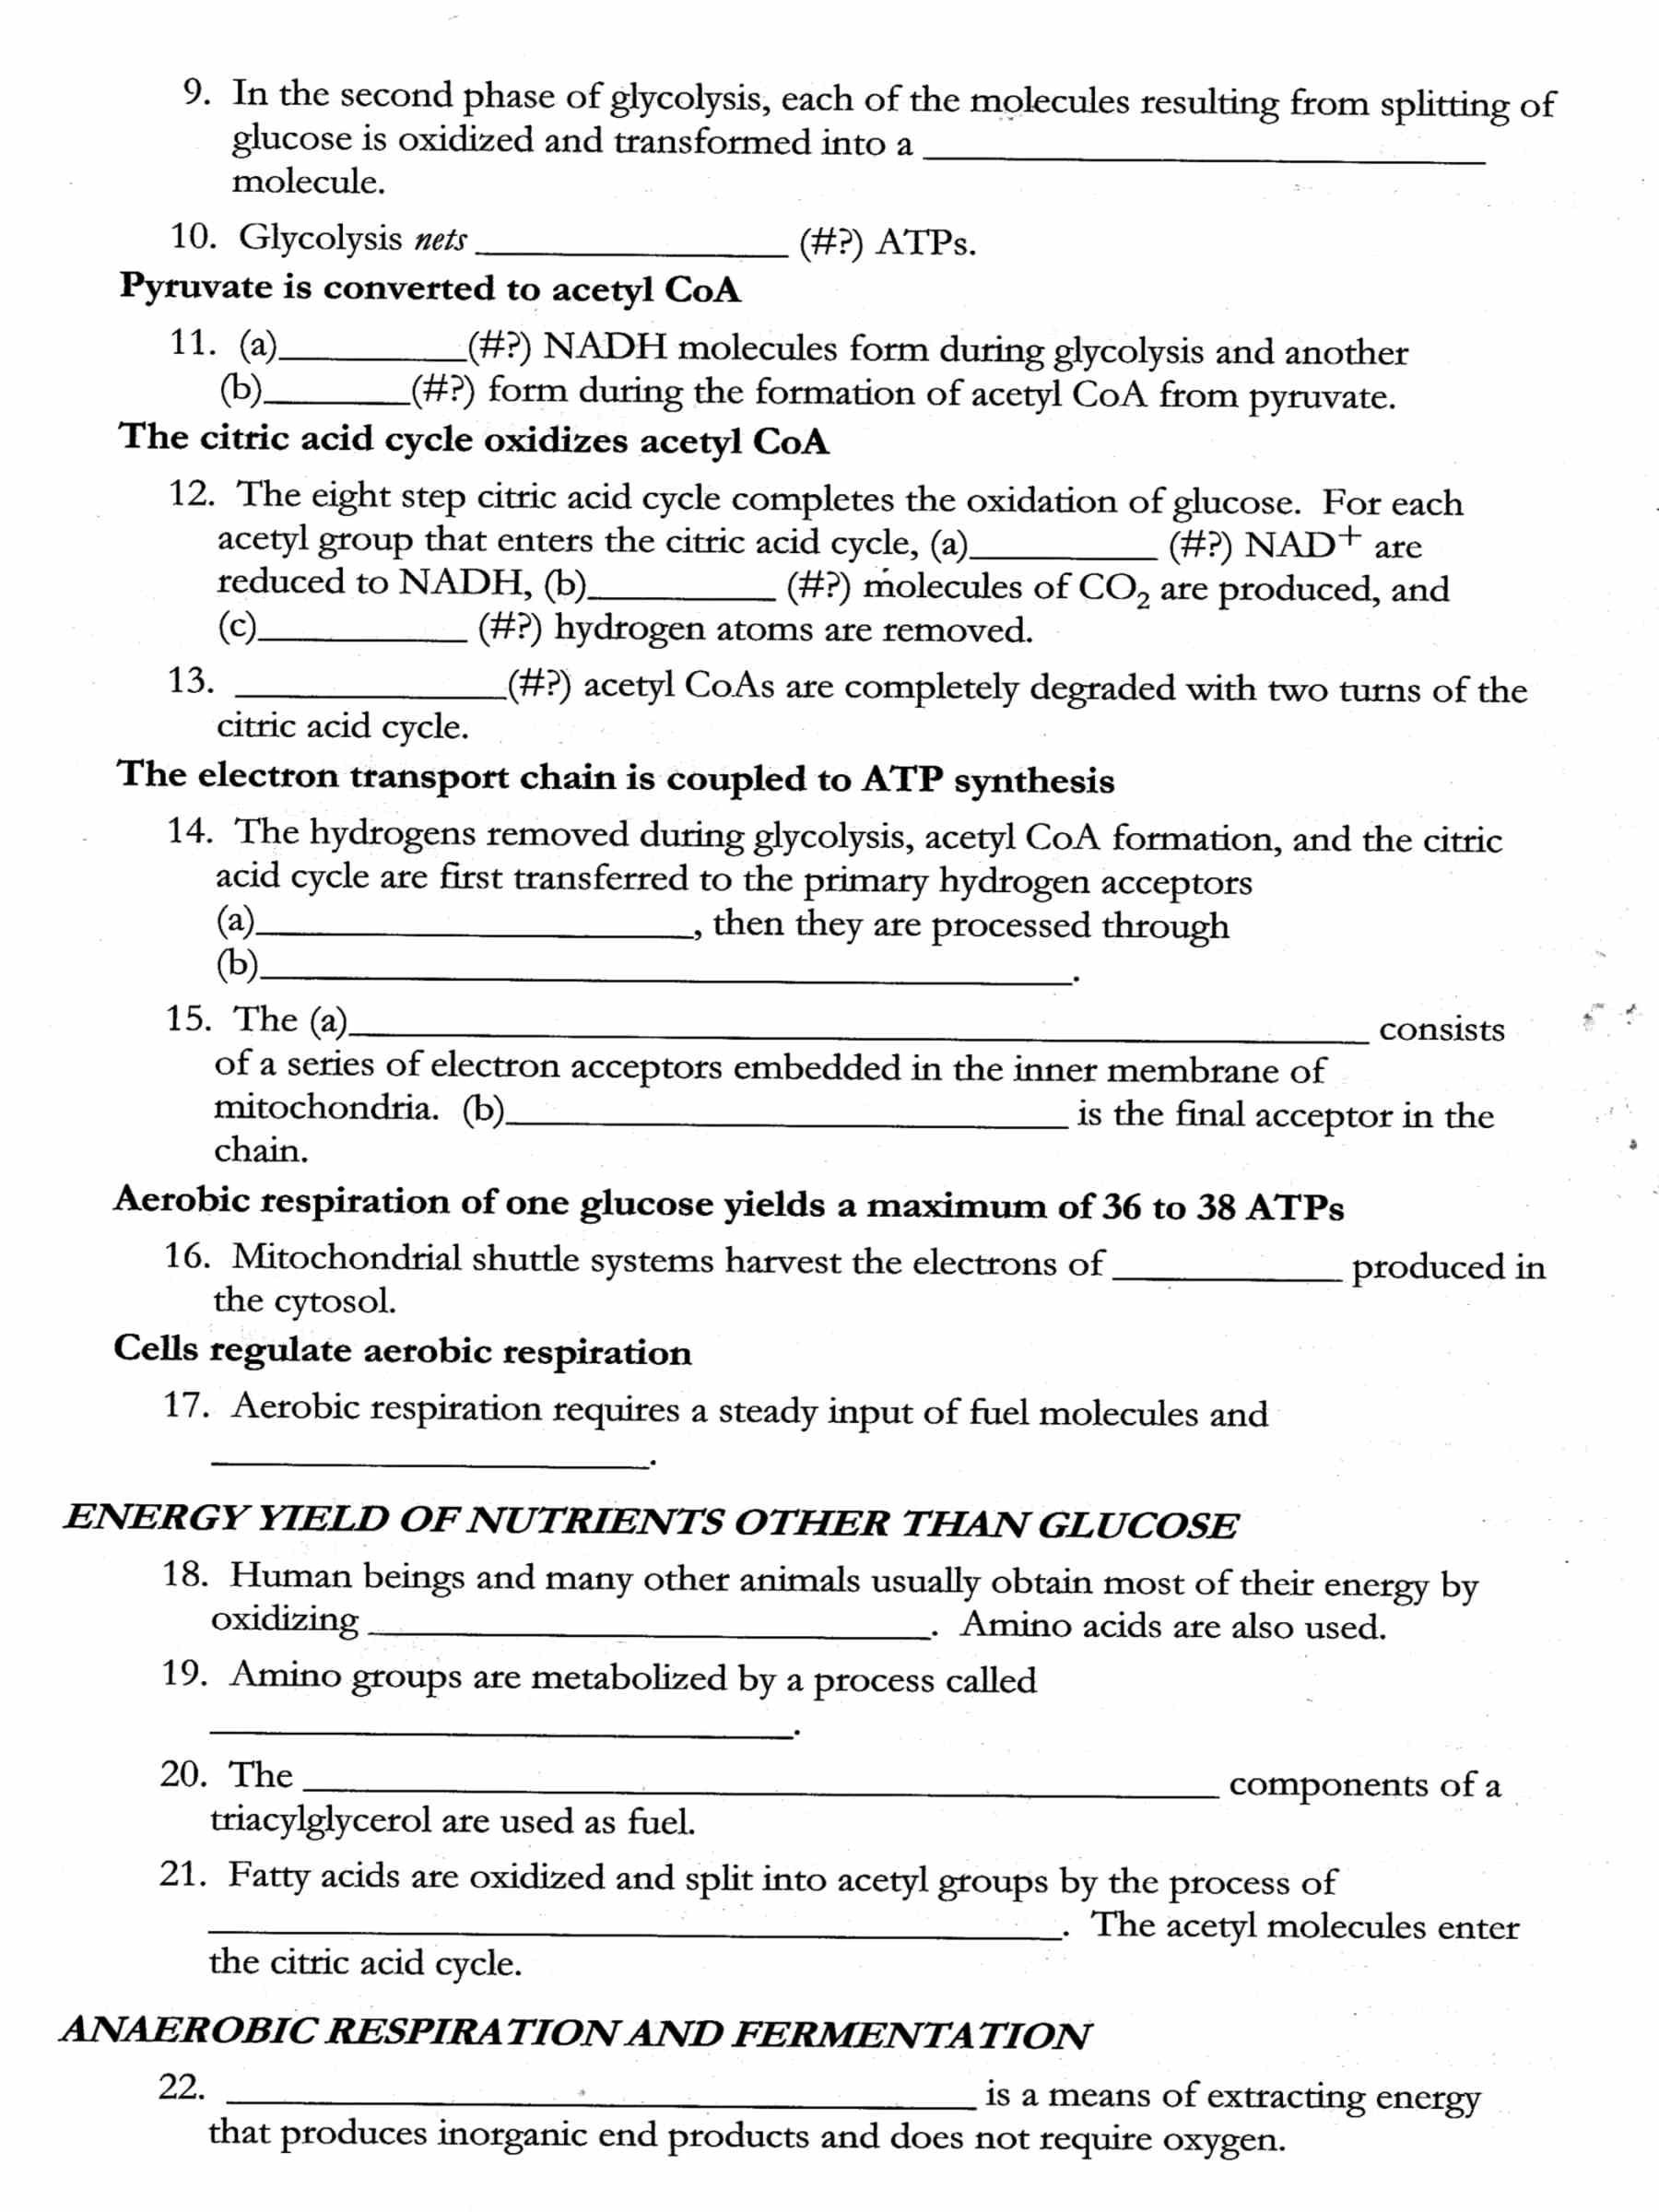 Printables Cellular Respiration Worksheet cellular respiration worksheet davezan 2 hcc learning web